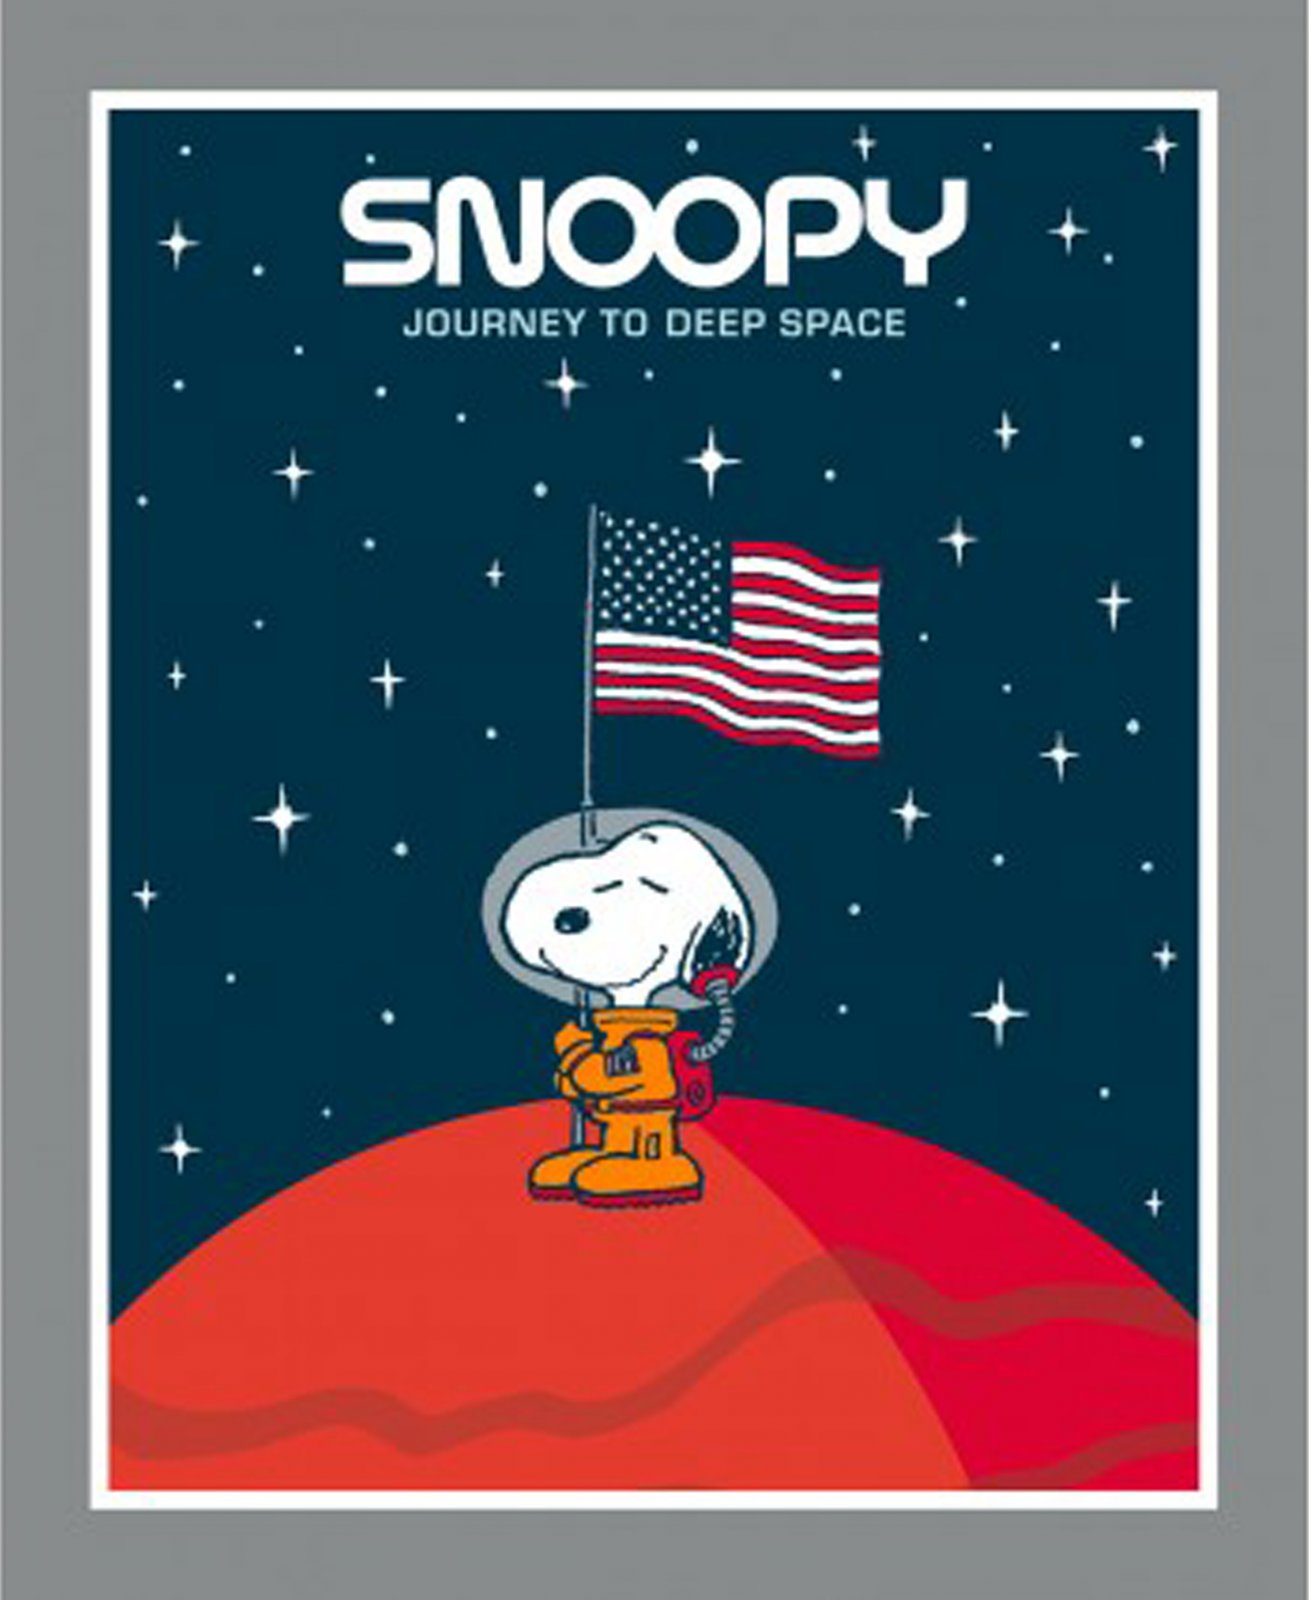 Peanuts - Snoopy Journey to Deep Space  - Panel